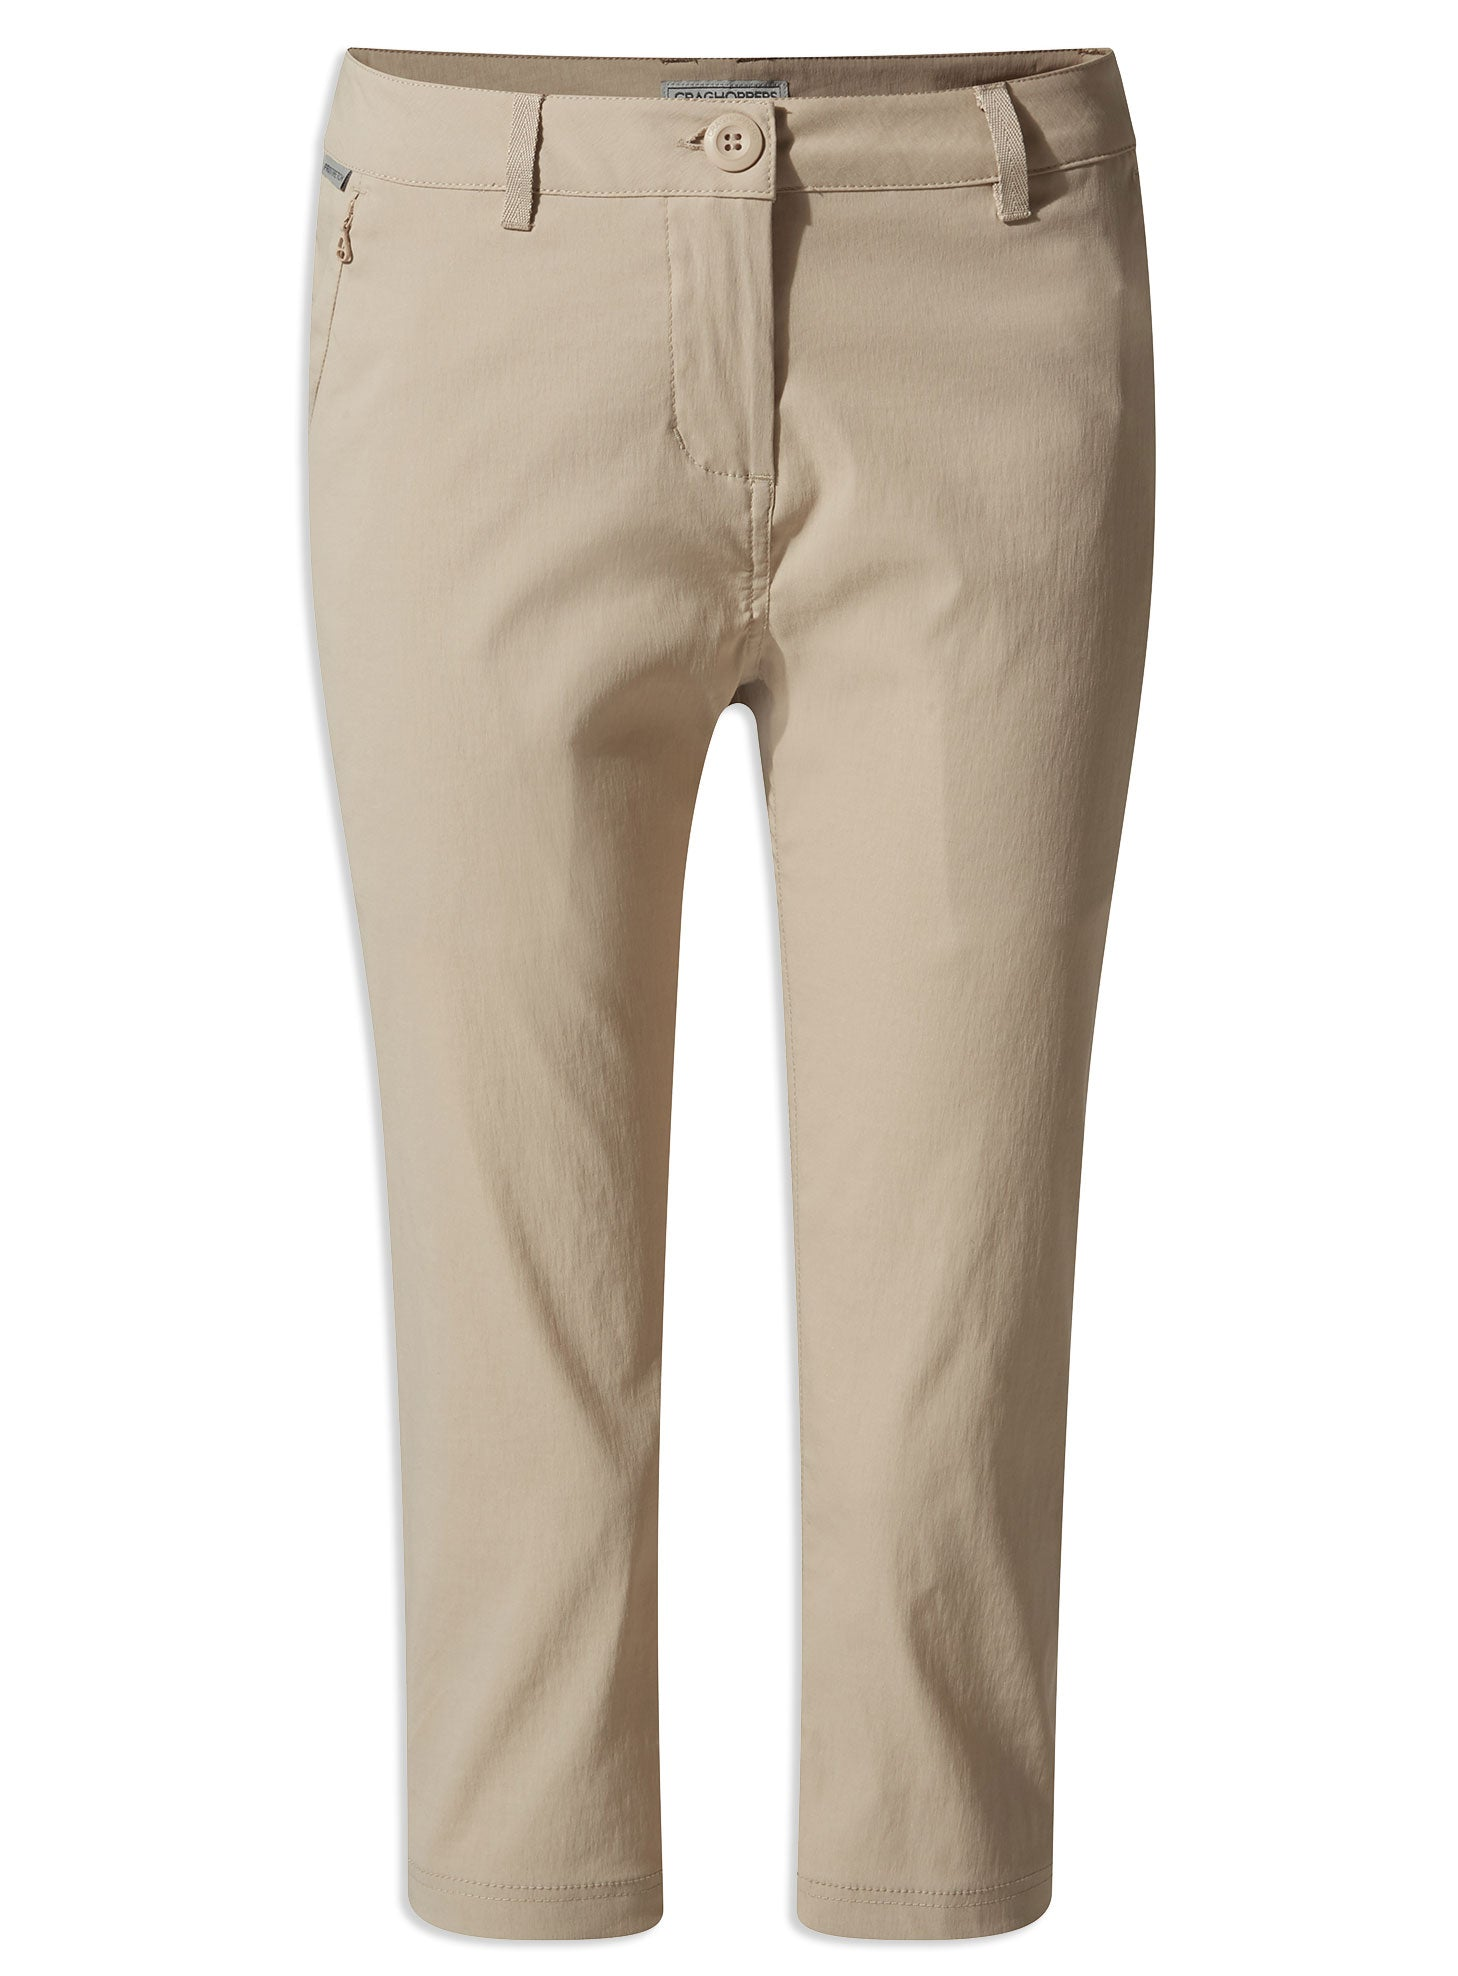 Desert sand Ladies Kiwi Pro Crop Trousers by Craghoppers